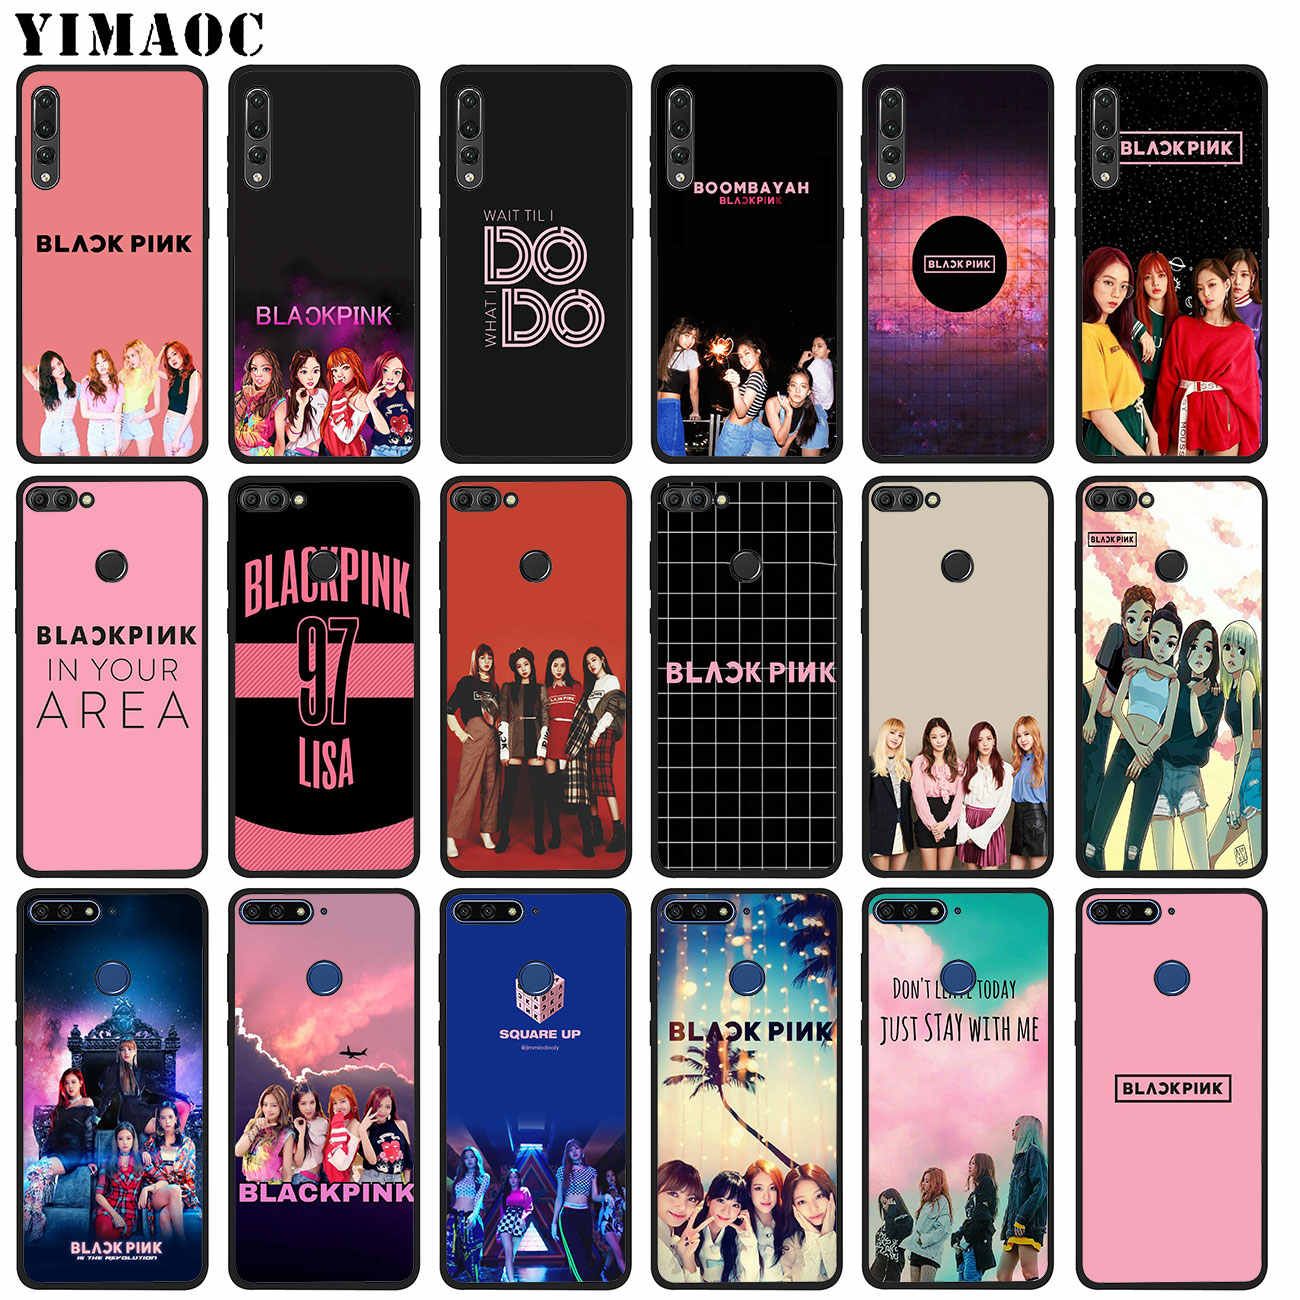 YIMAOC JENNIE BLACKPINK Kpop LISA Soft Silicone Phone Case for Huawei P20 Pro P10 P9 P8 Lite Mini 2017 P Smart Z 2019 TPU Cover